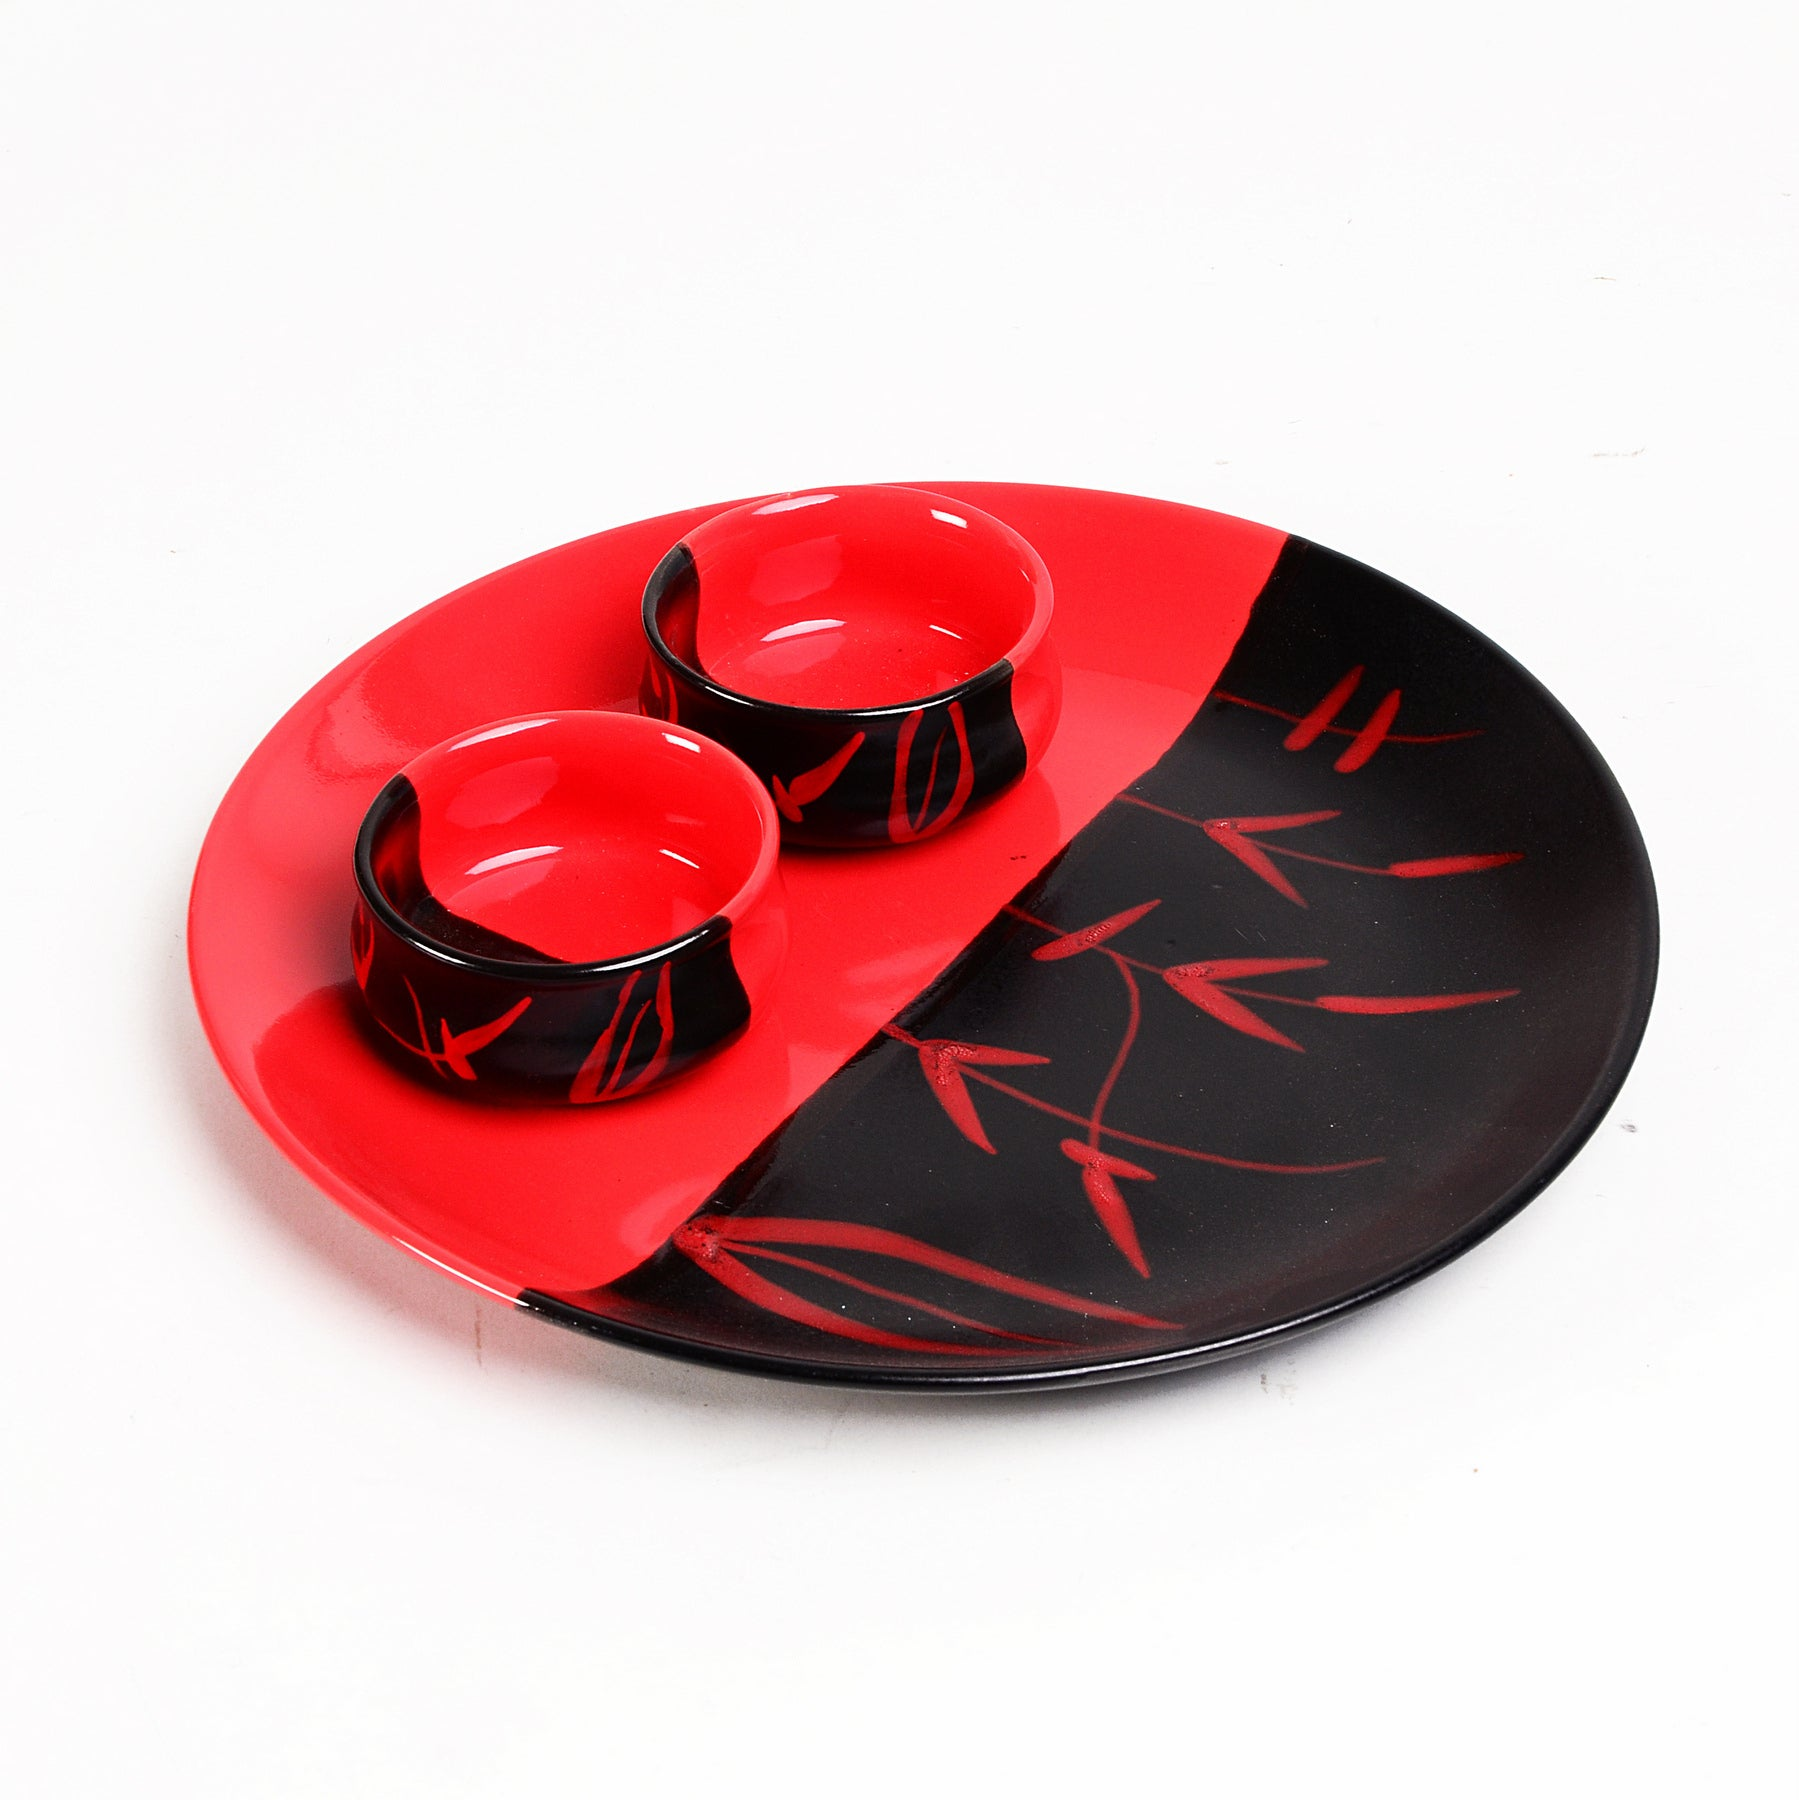 duett-snacks-red-n-black-plate-dec5514